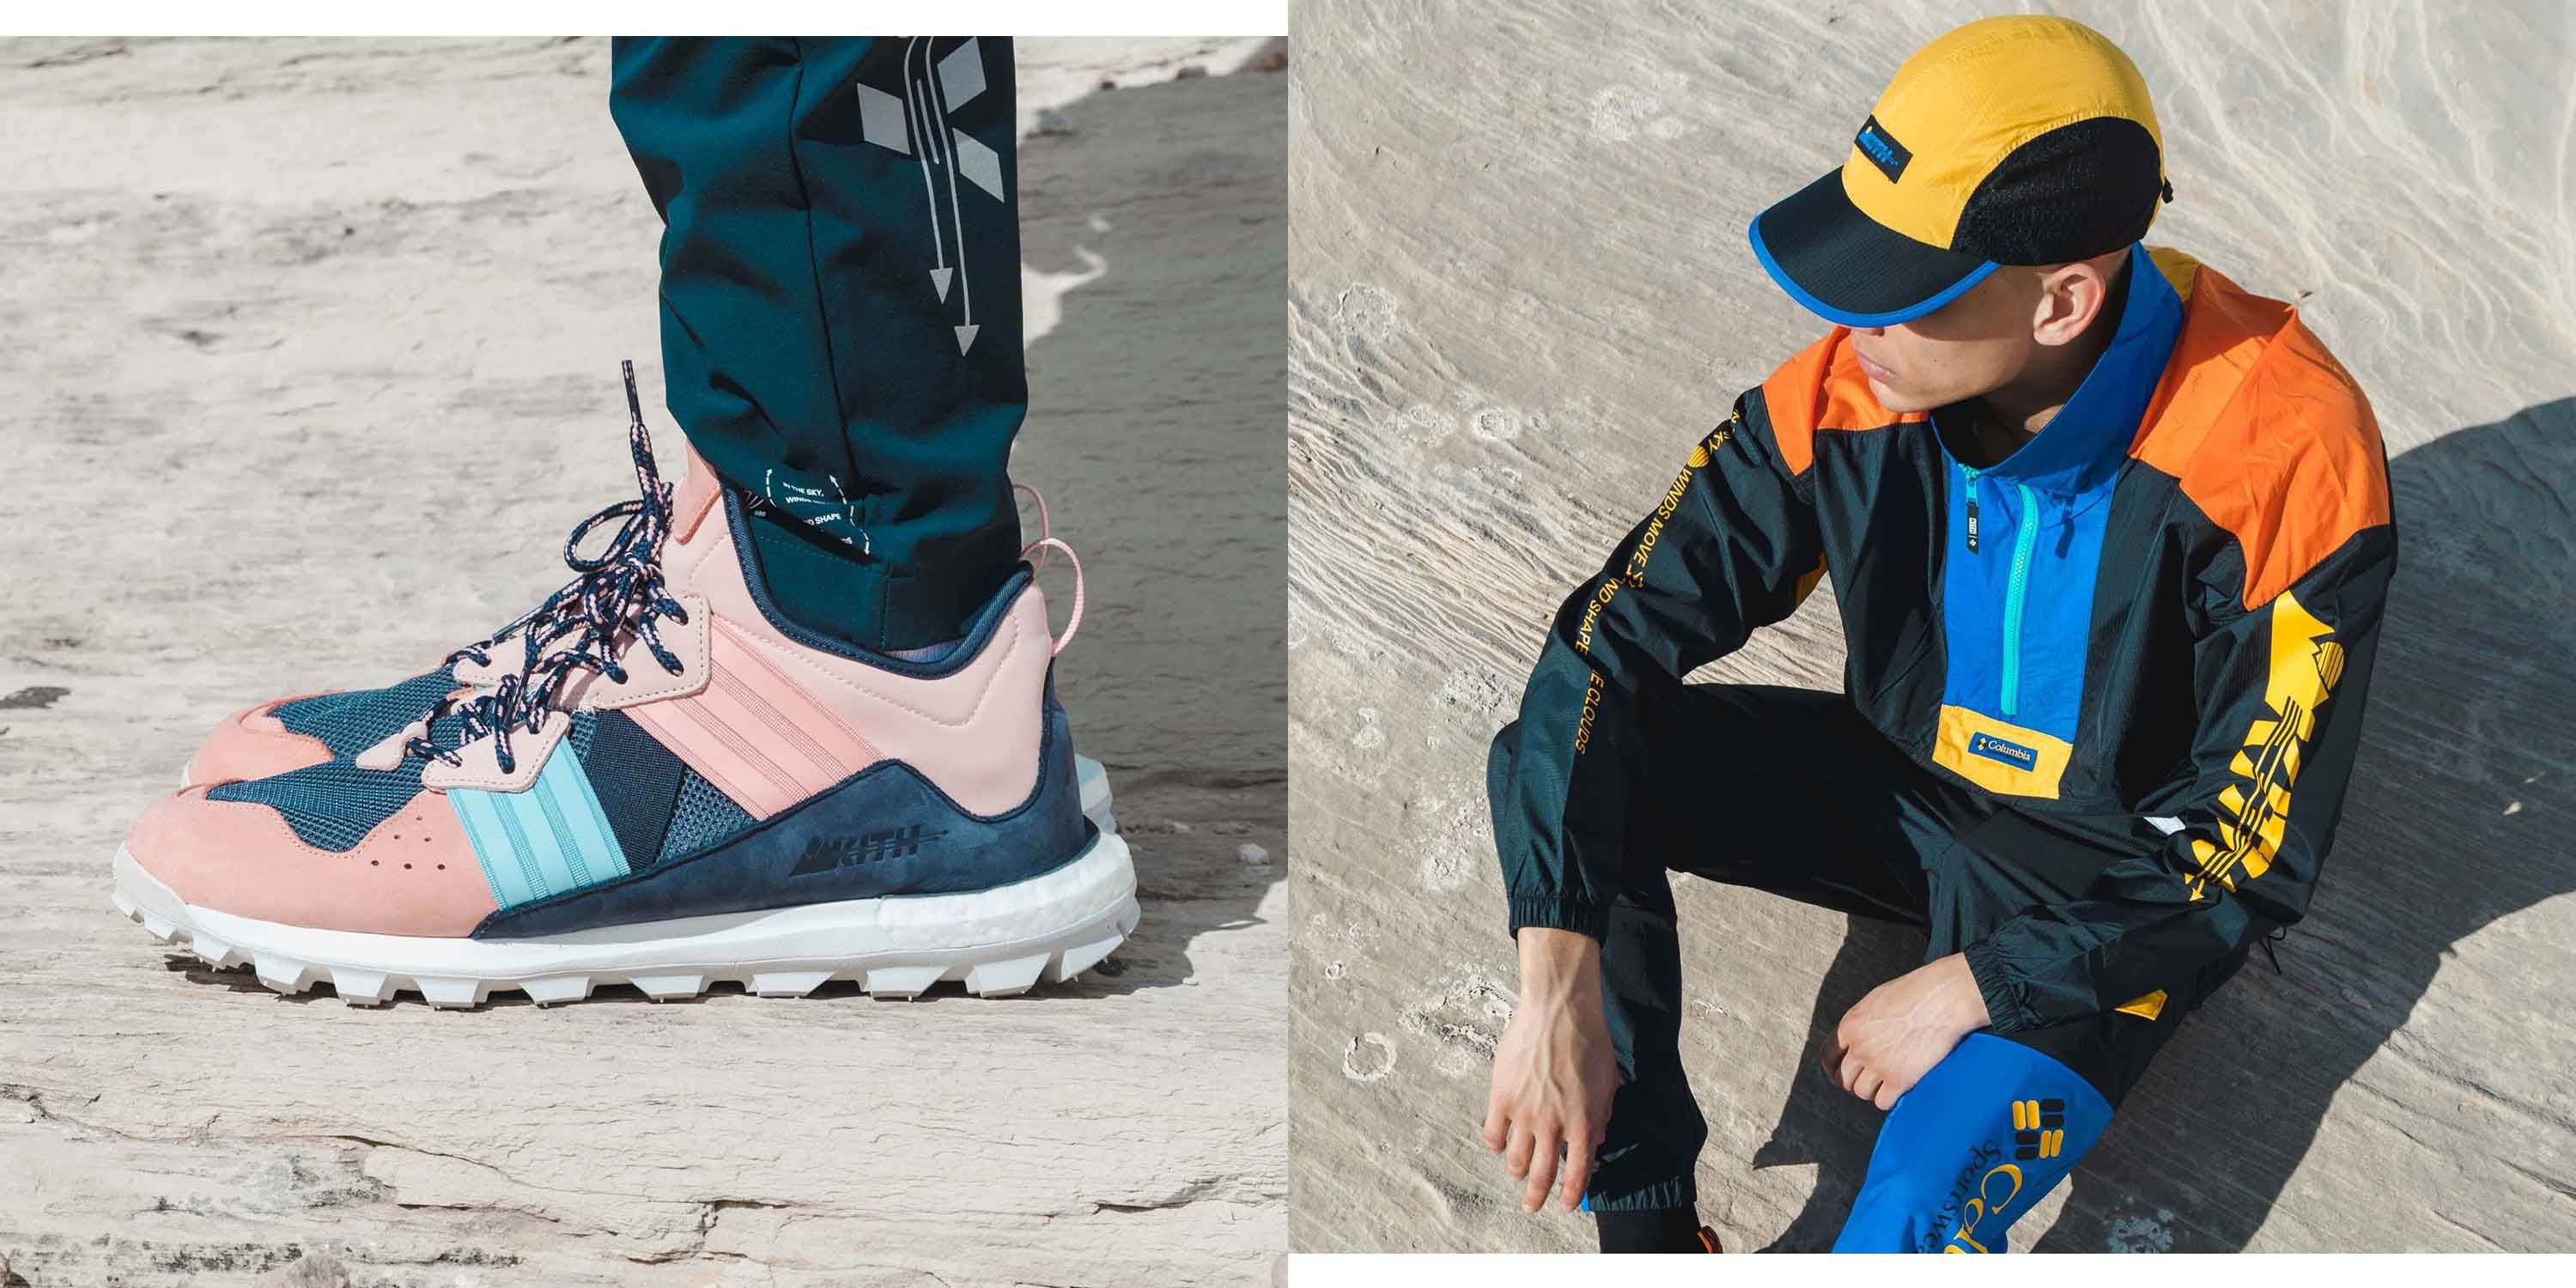 38db7cbe69a Kith s Latest Collection Brings Some Southwestern Heat to the World of  Streetwear